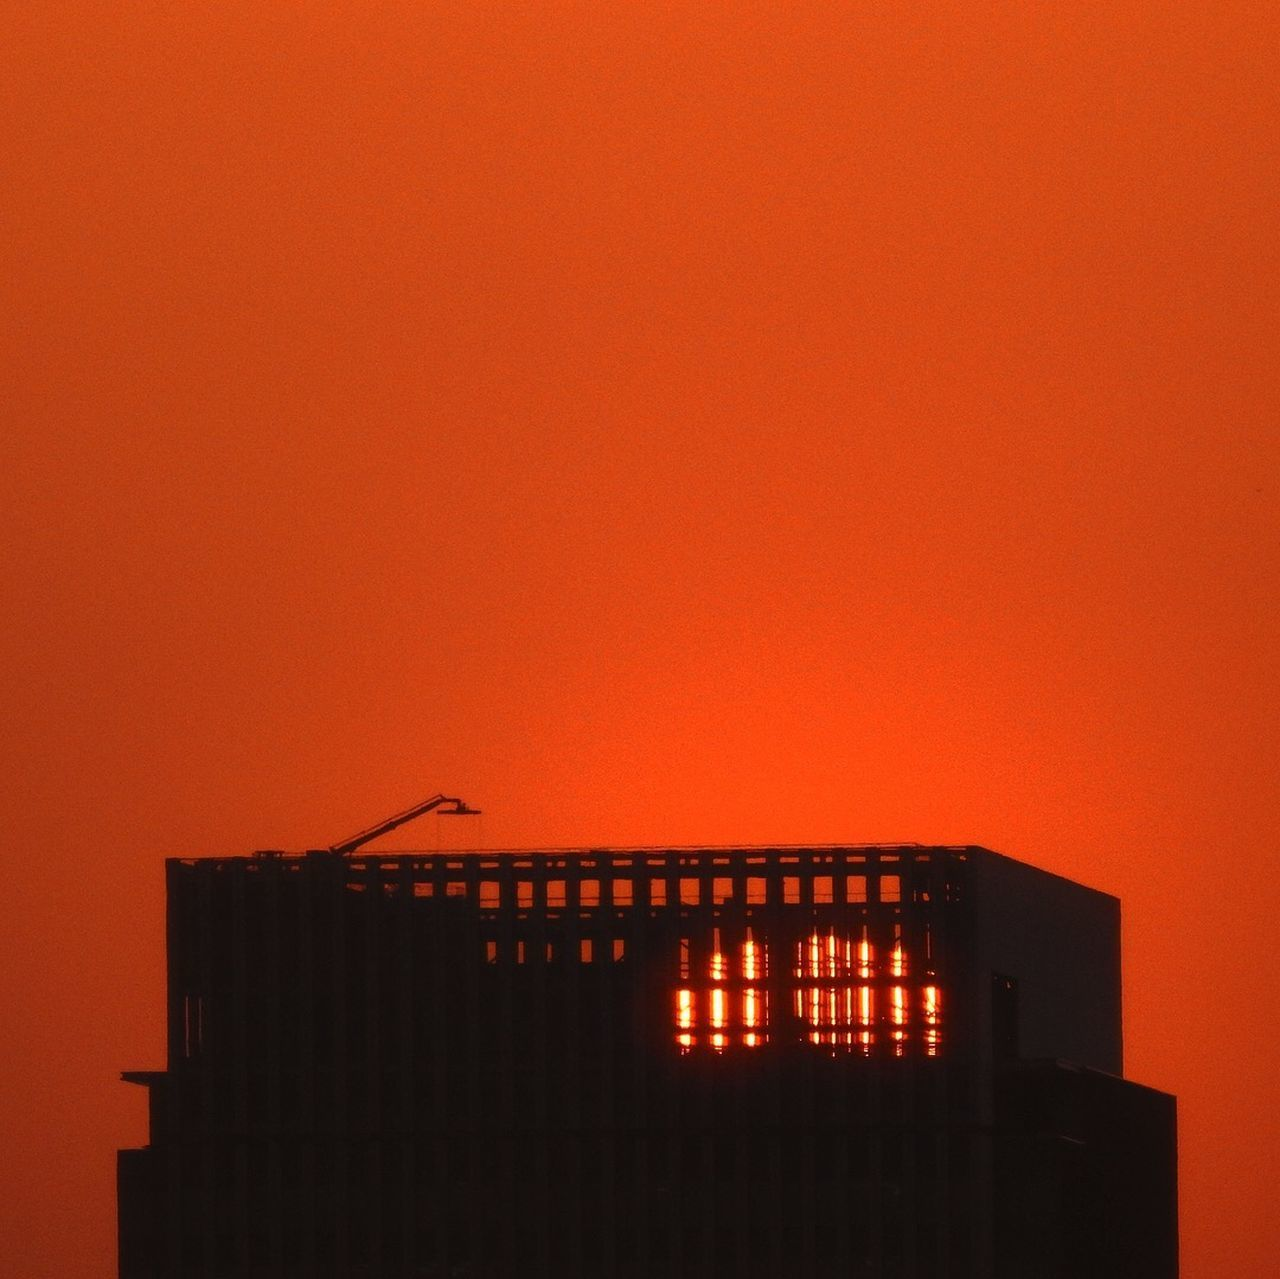 architecture, built structure, building exterior, orange color, sky, copy space, building, sunset, no people, clear sky, nature, silhouette, outdoors, illuminated, residential district, low angle view, industry, construction industry, city, house